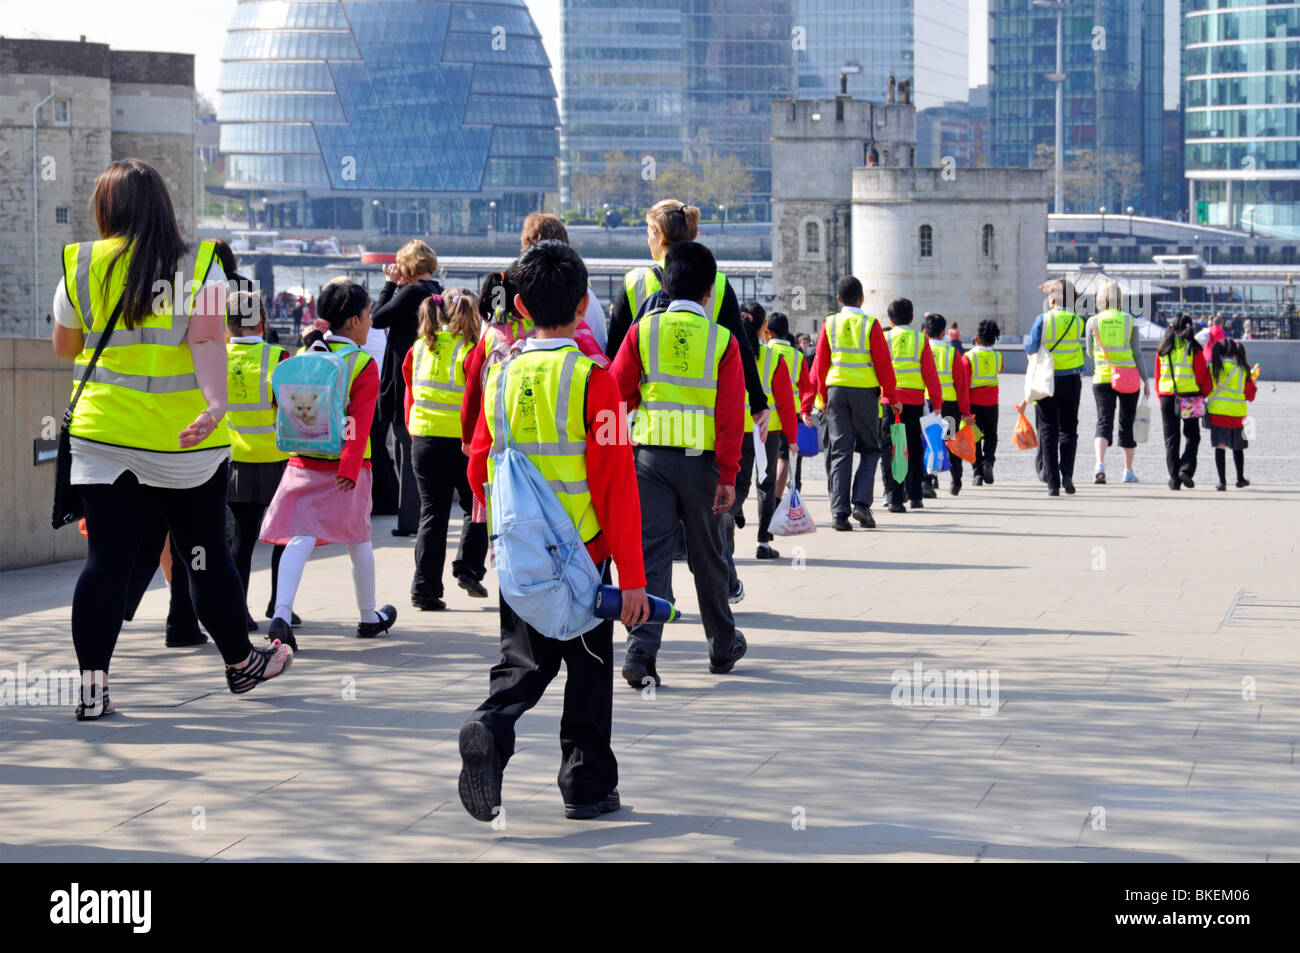 School trip pupils and adults wearing high visibility jackets on visit  to The Tower of London - Stock Image